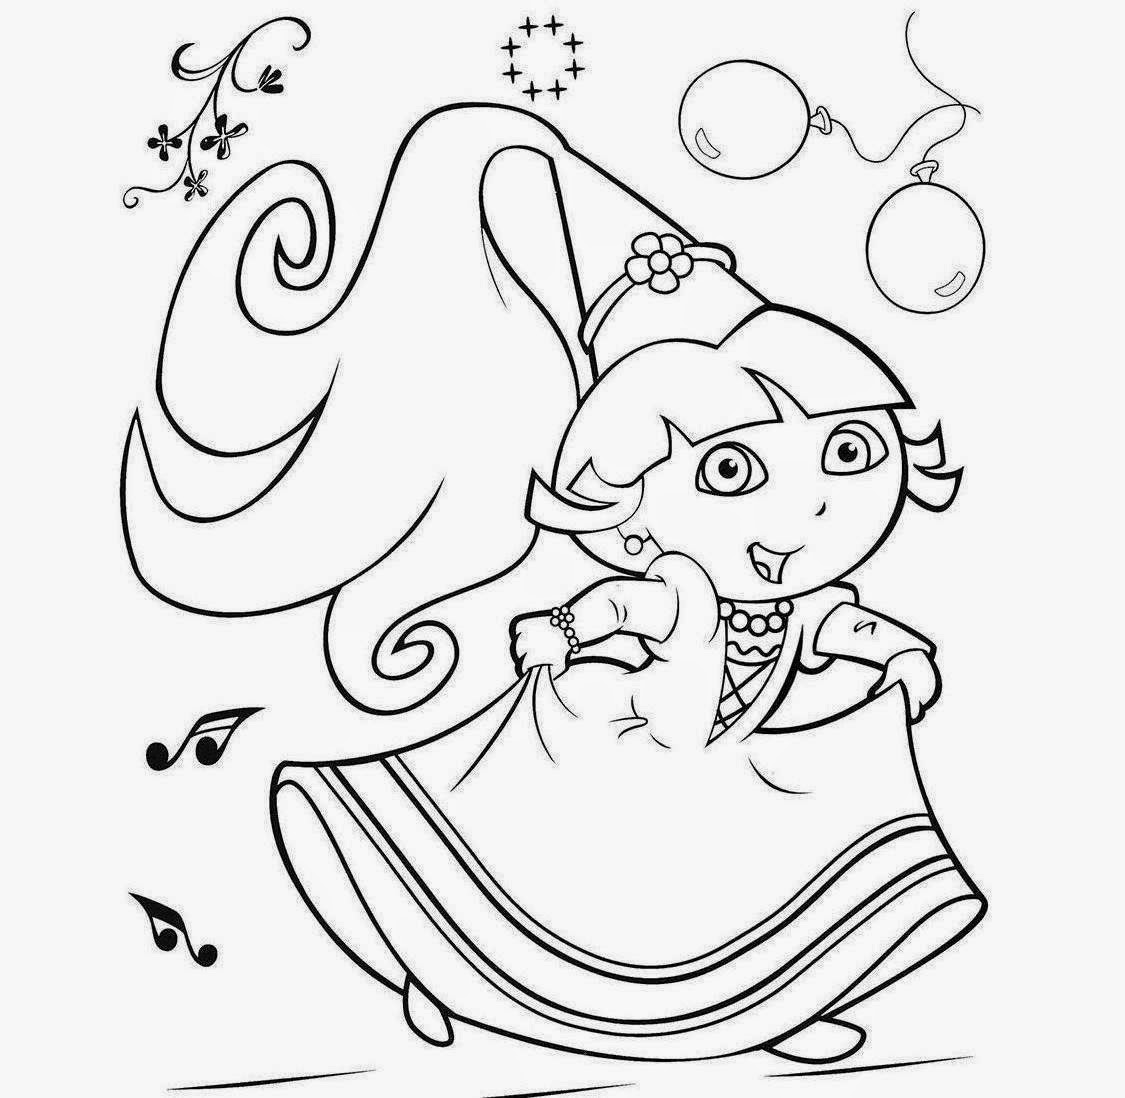 Dora princess coloring pages ~ Colour Drawing Free Wallpaper: Princess Dora Coloring ...